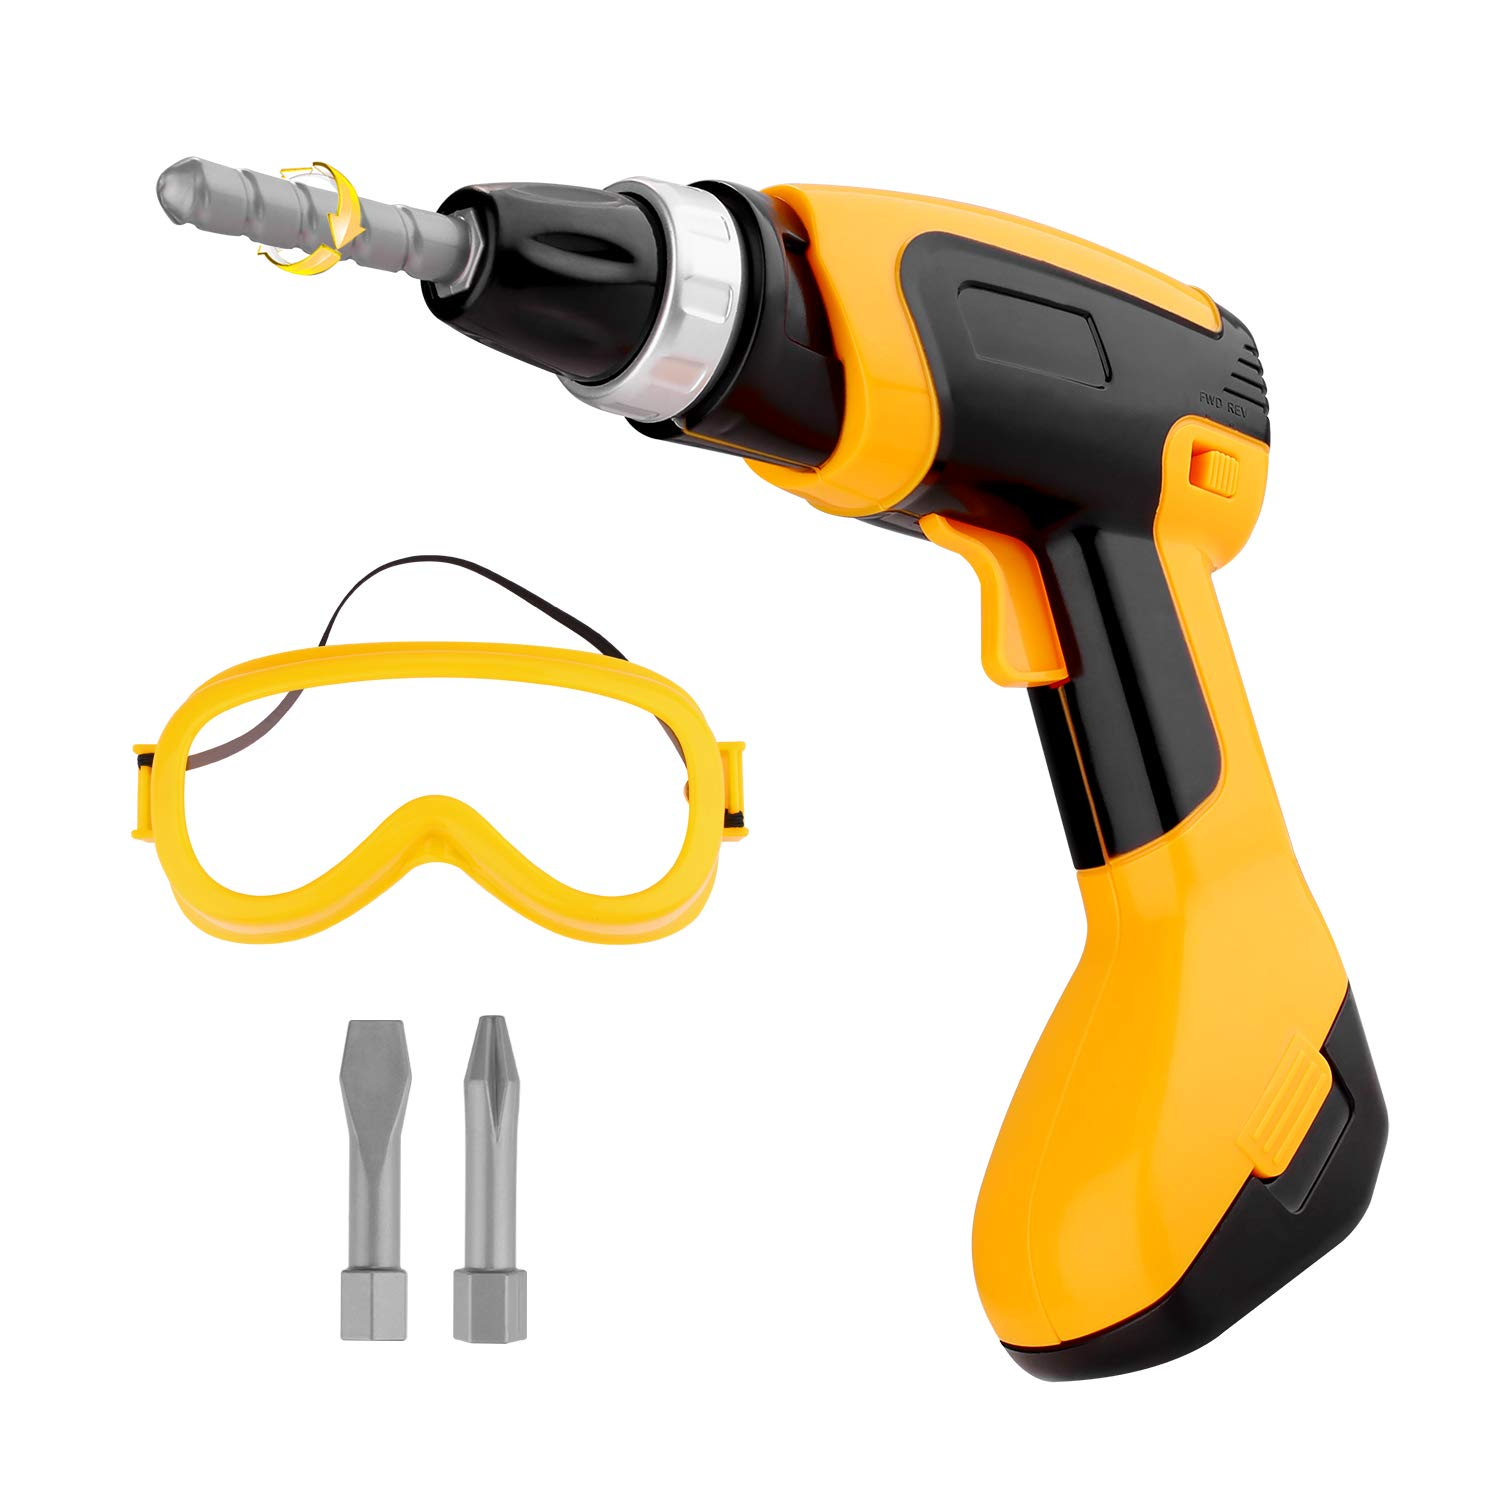 Toy Power Tool Drill, Kids Power Construction Tool Electric Drill with Goggle, Toddlers Toy Shop Tools for Boys